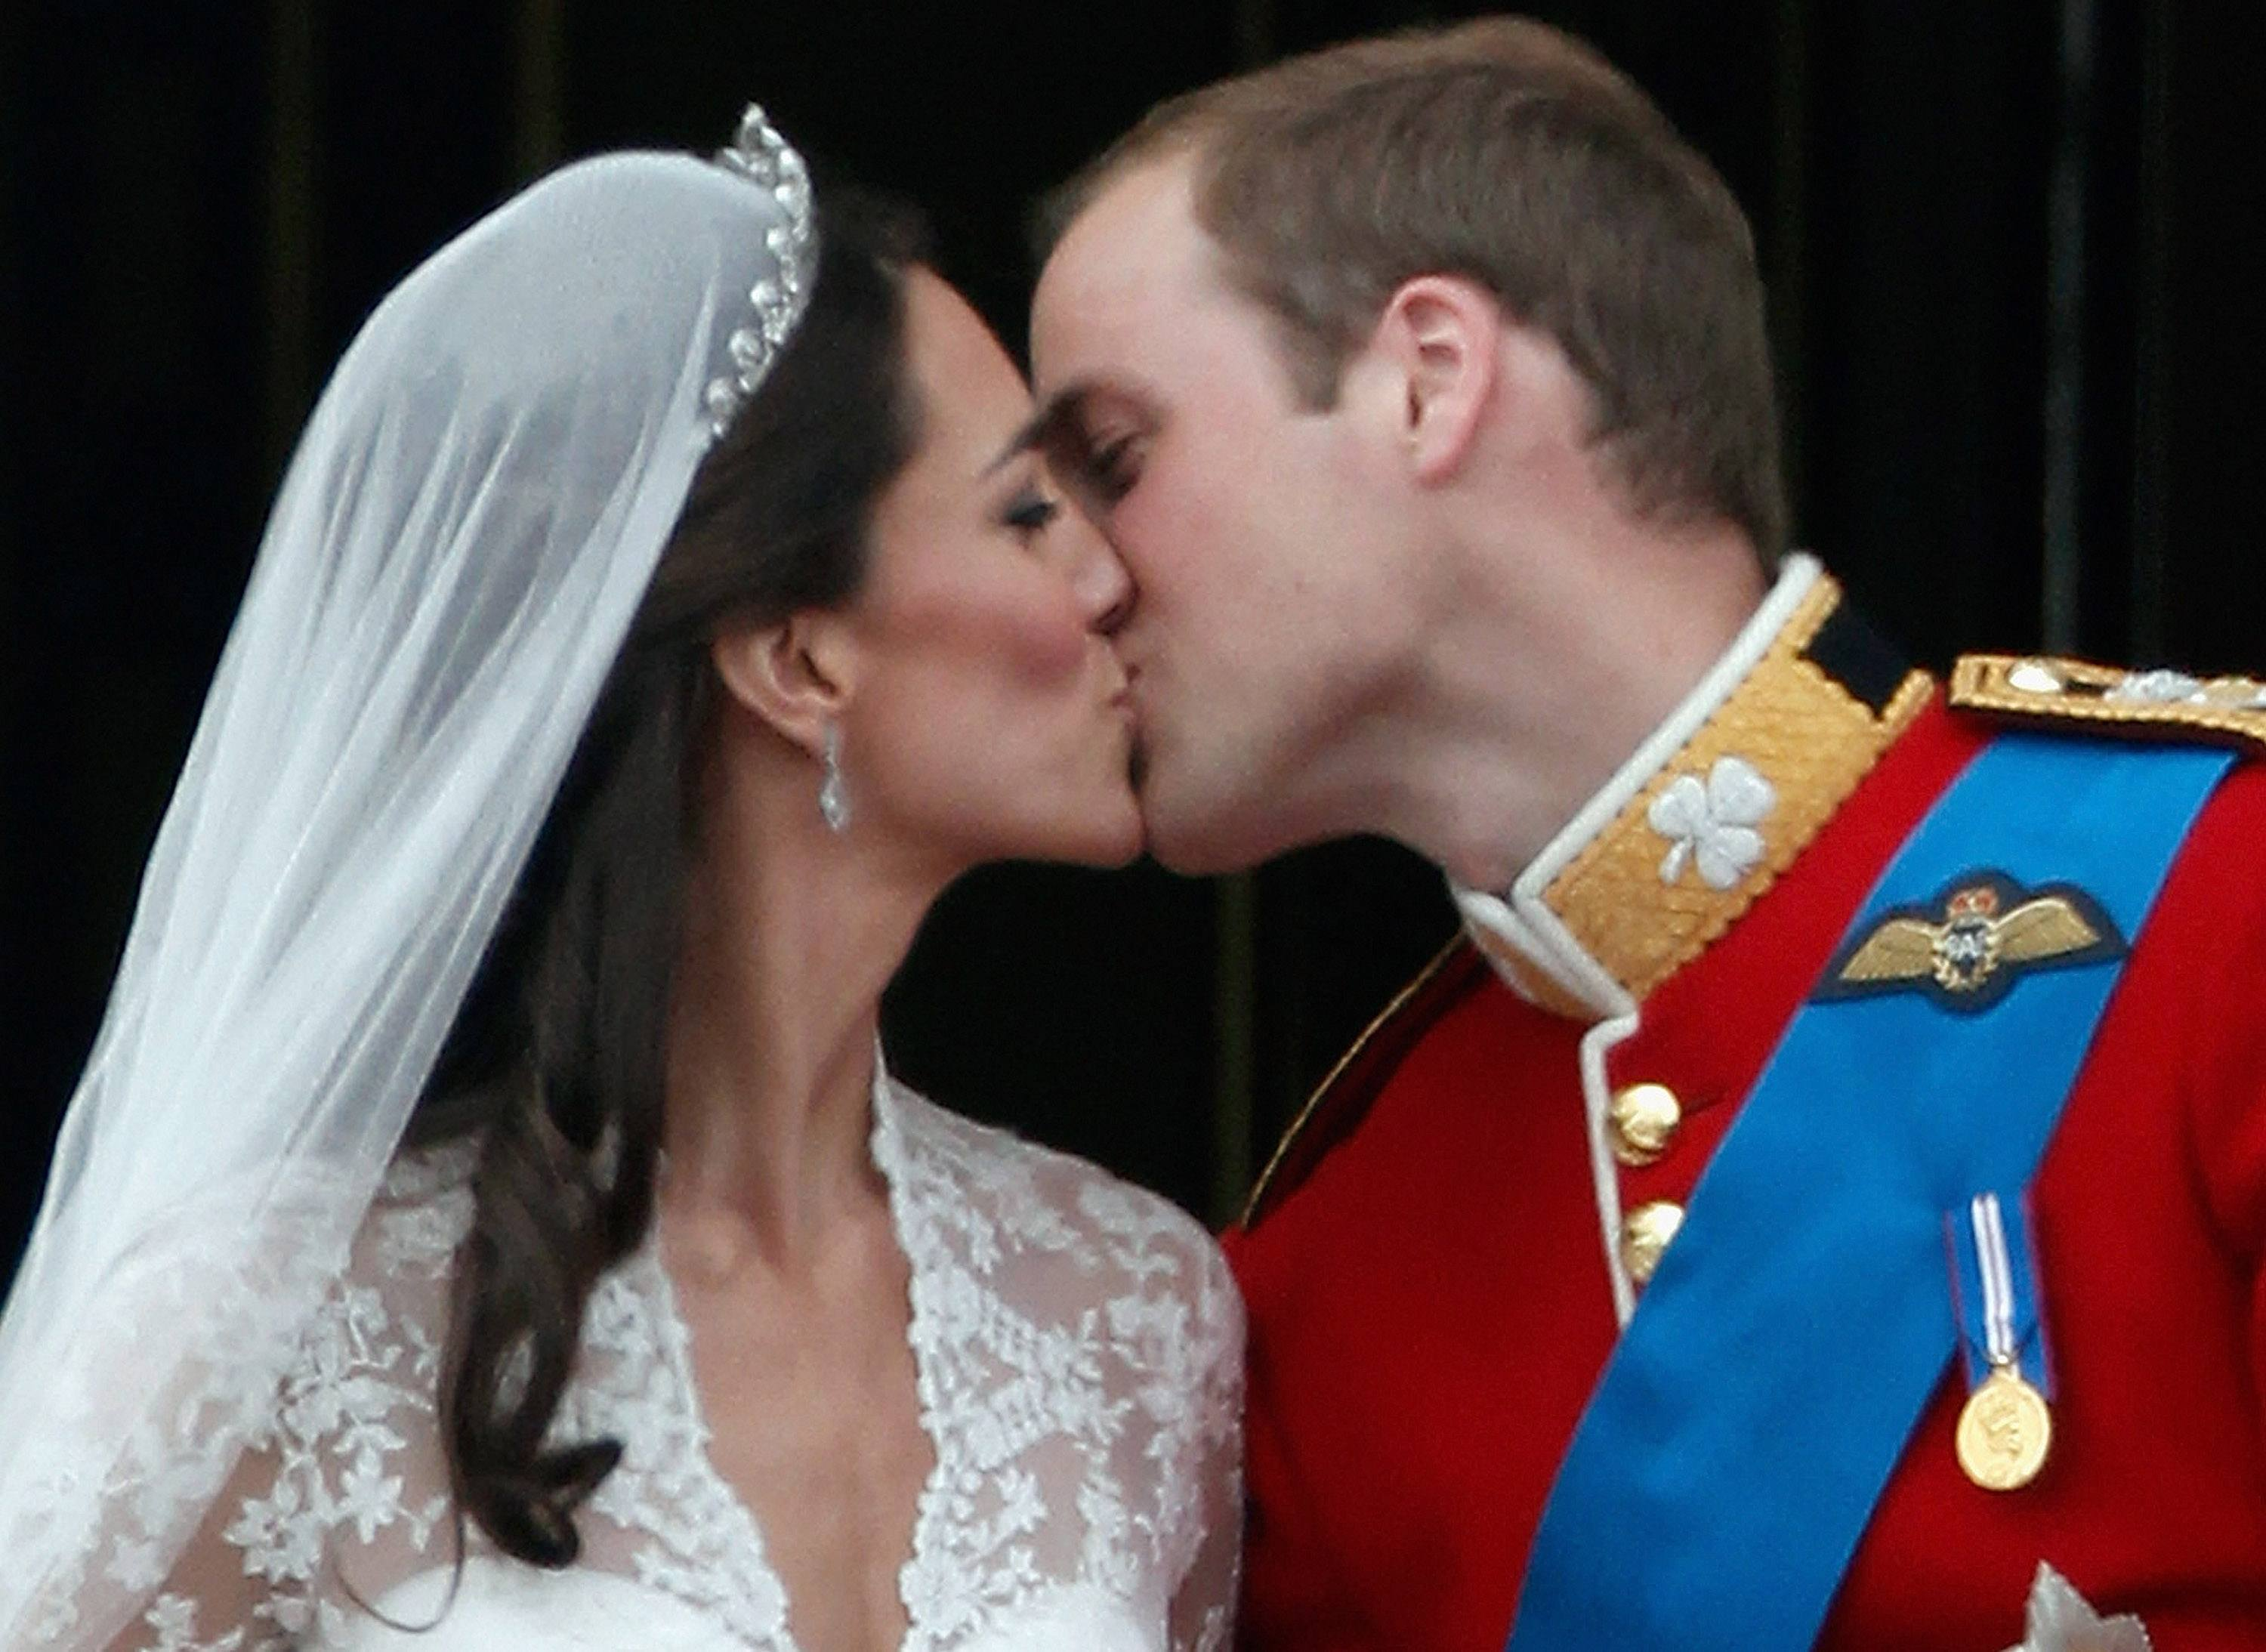 Royals can also have Public Display of Affection